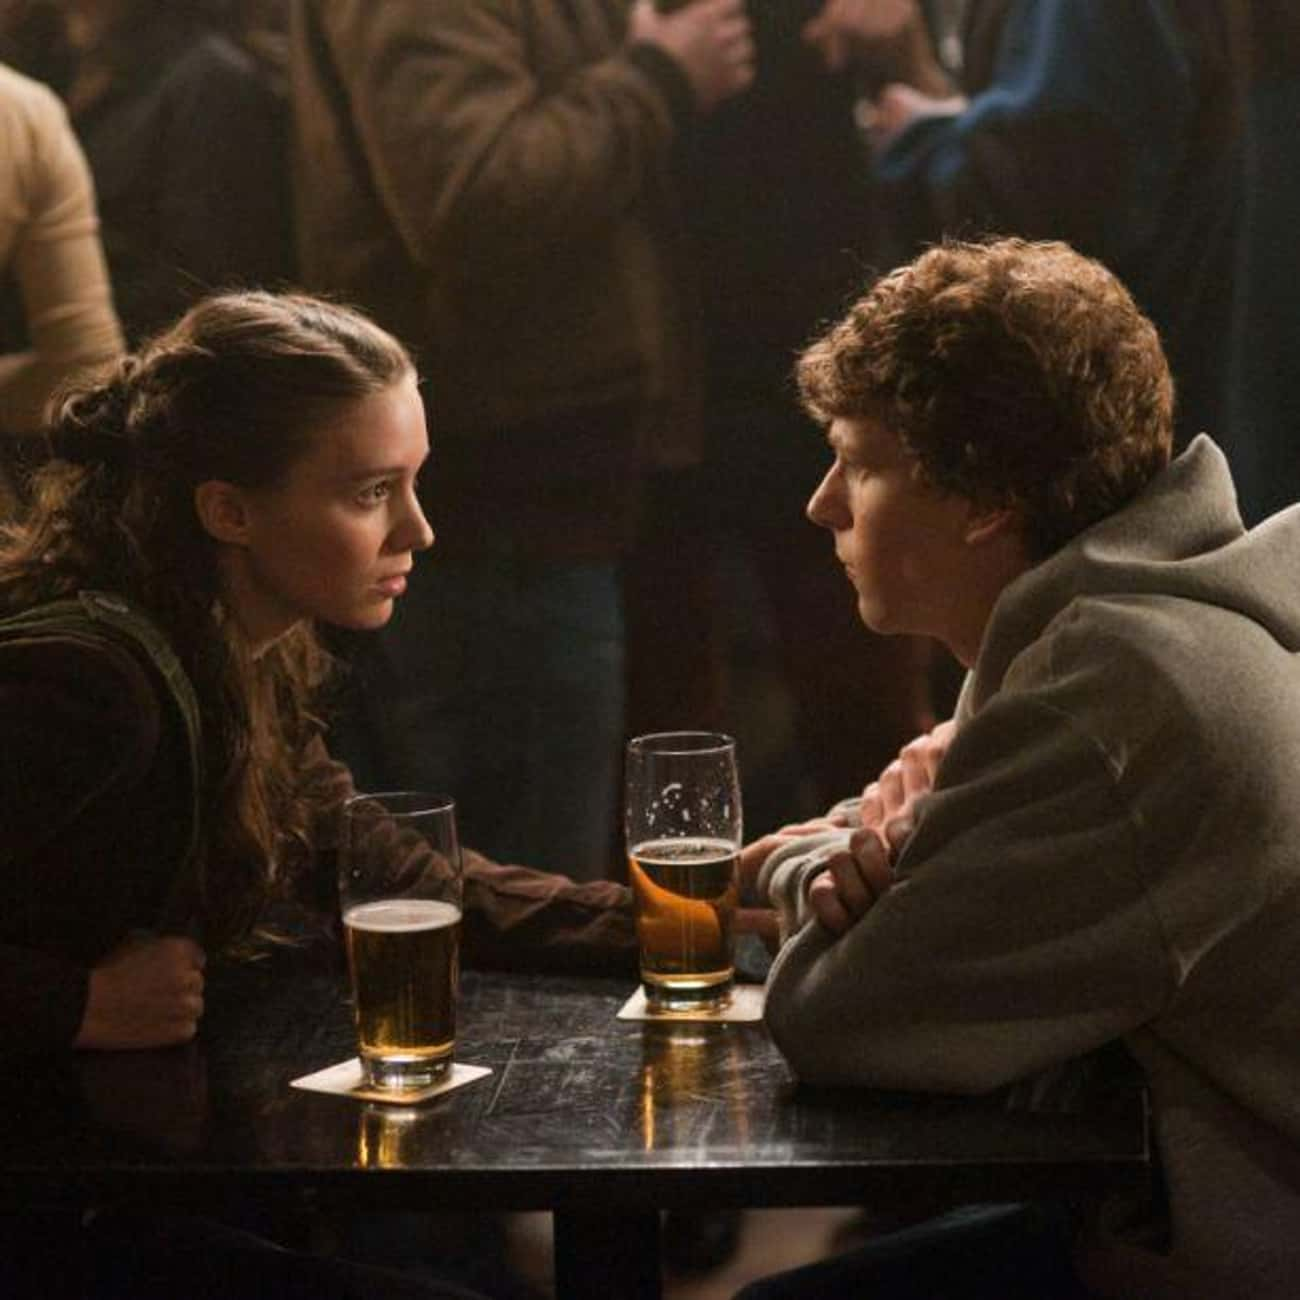 Call Themselves Tall is listed (or ranked) 1 on the list The Most Memorable Quotes From 'The Social Network'